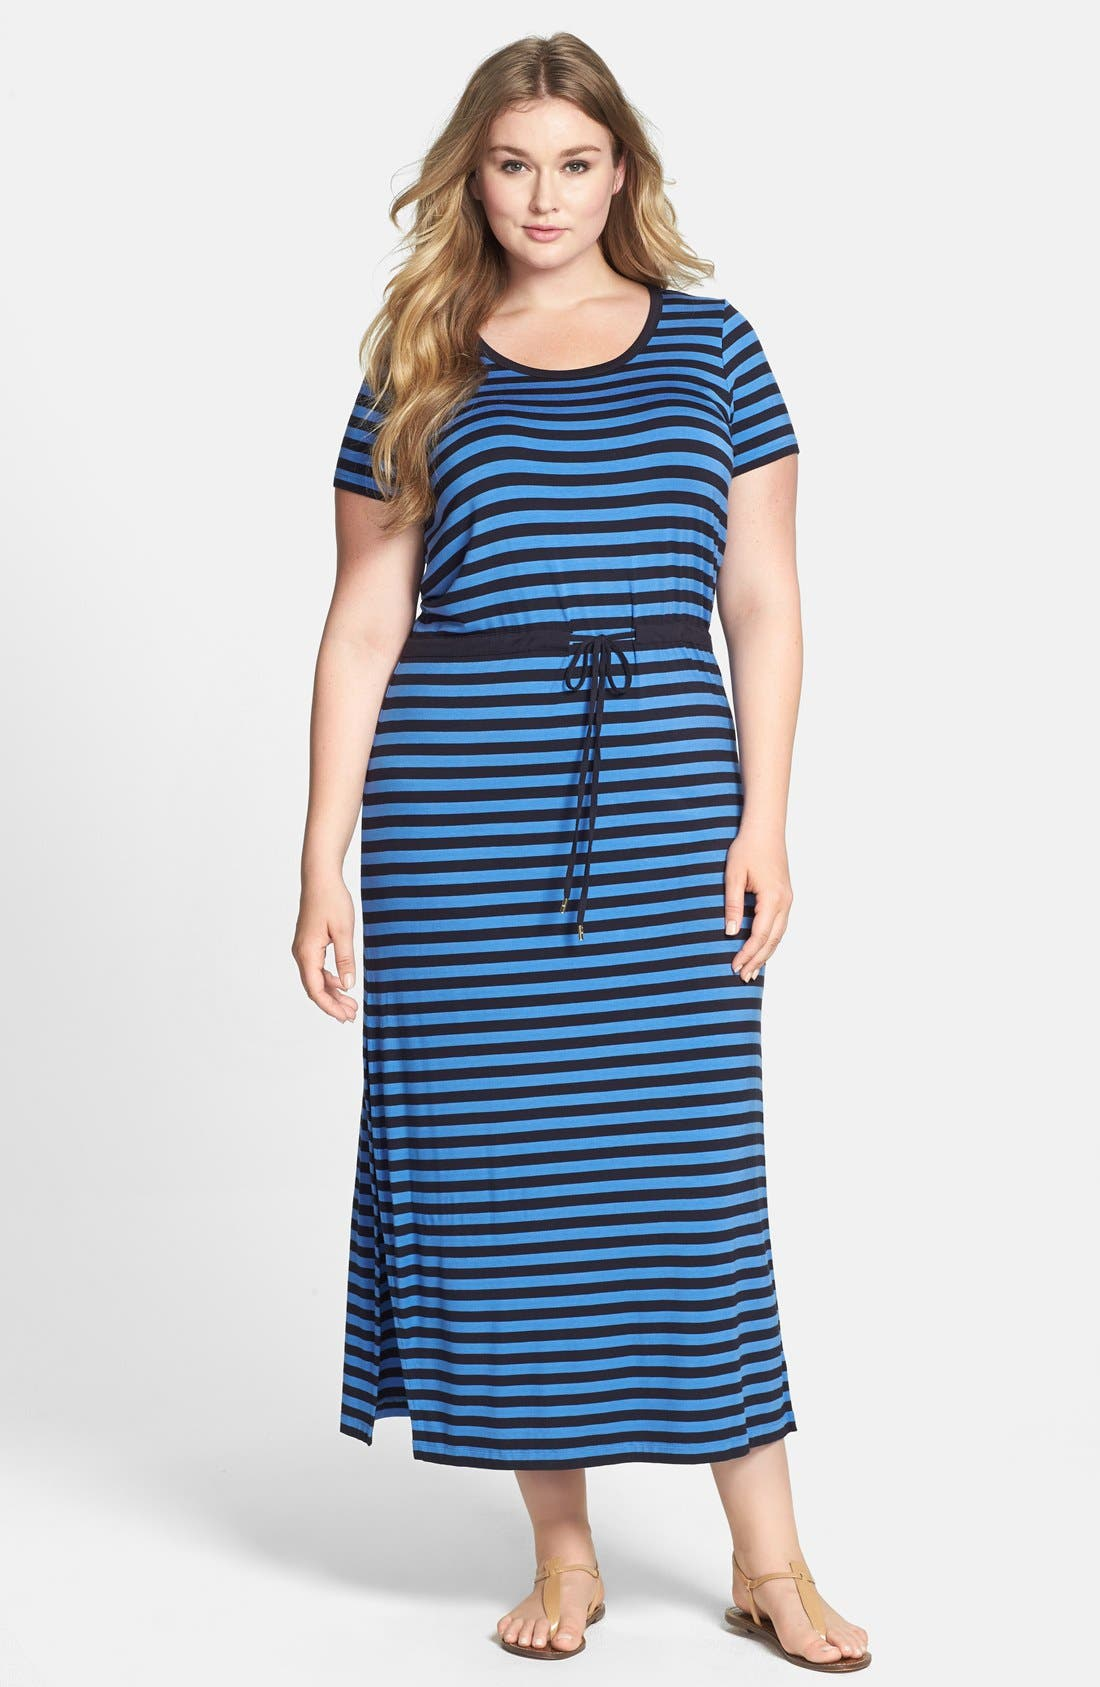 Alternate Image 1 Selected - MICHAEL Michael Kors Stripe Drawstring Waist Stretch Knit Maxi Dress (Plus Size)